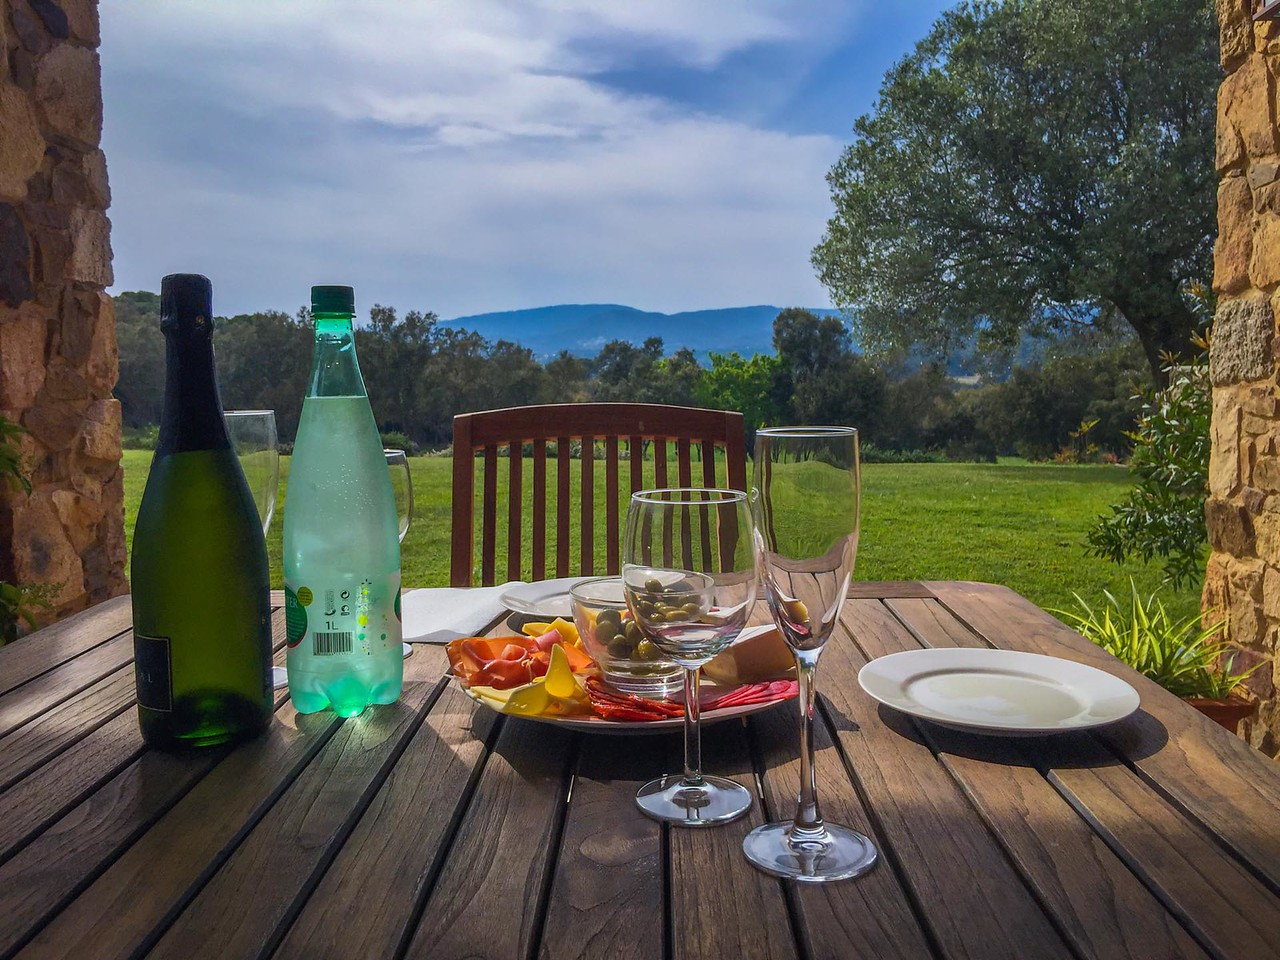 Enjoying the view and the food from our Charming Villa in Spain.